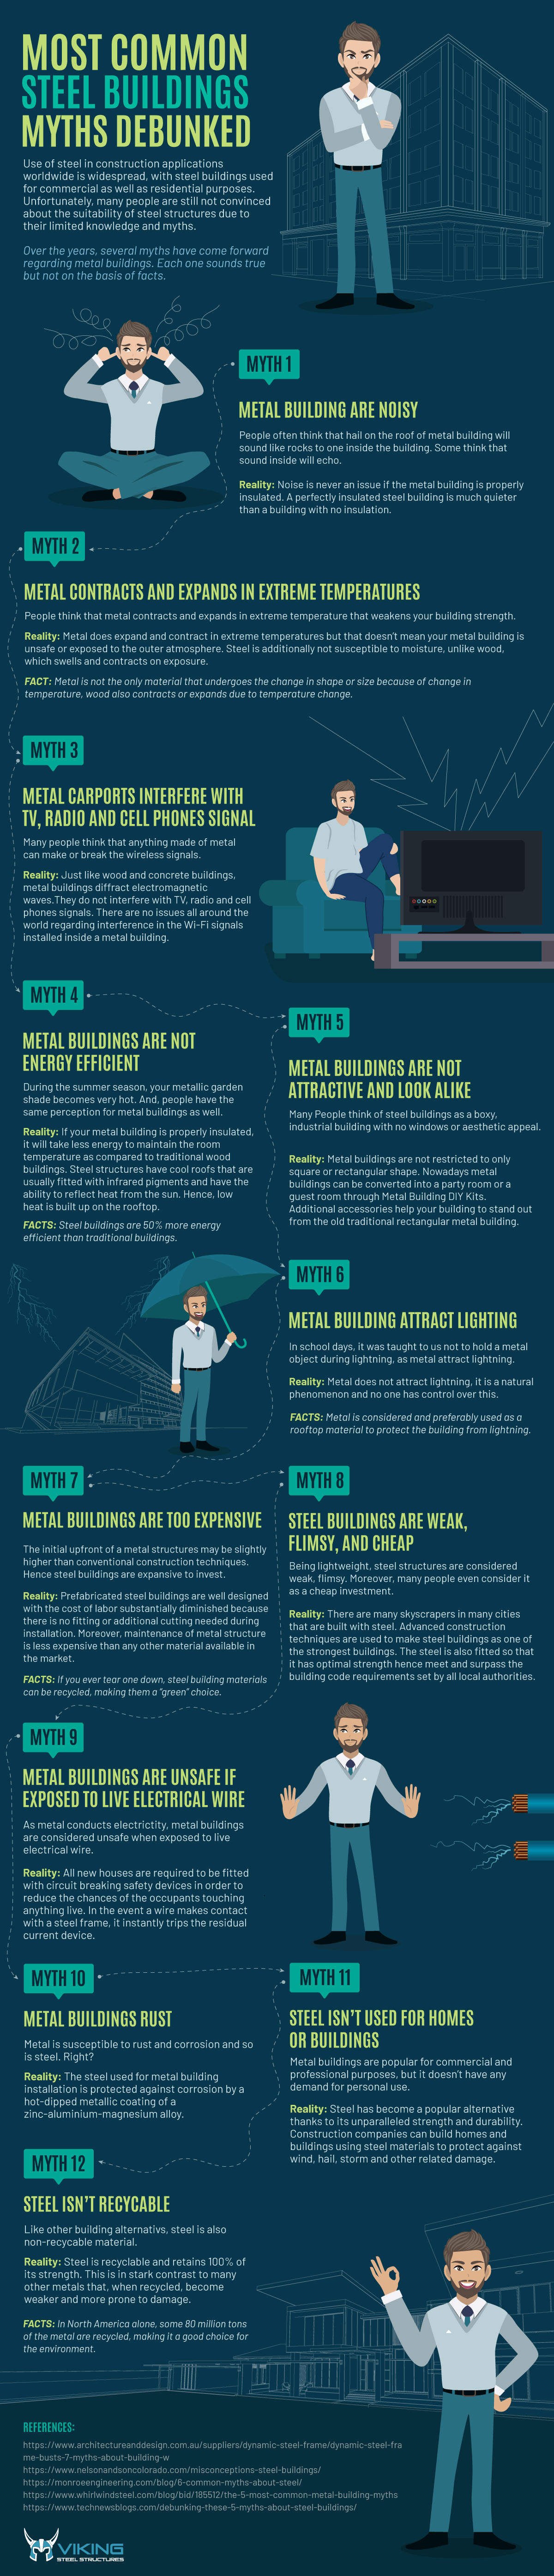 Most Common Steel Buildings Myths Debunked